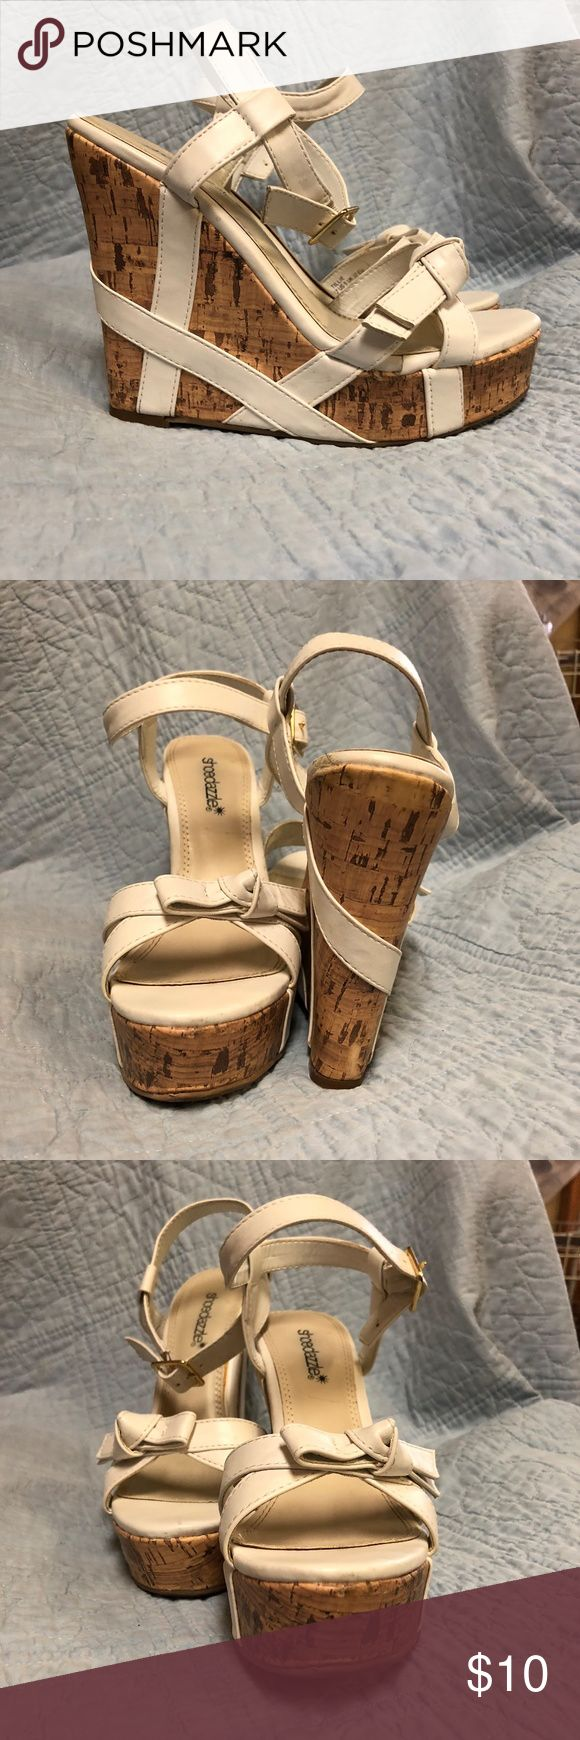 "Shoe Dazzle Tillie White size 7 White strappy wedge sandals. Buckle ankle strap, knot bow across top of foot. 5"" wedge 1 3/4"" foot bed. very comfortable. Shoe Dazzle Shoes Platforms"